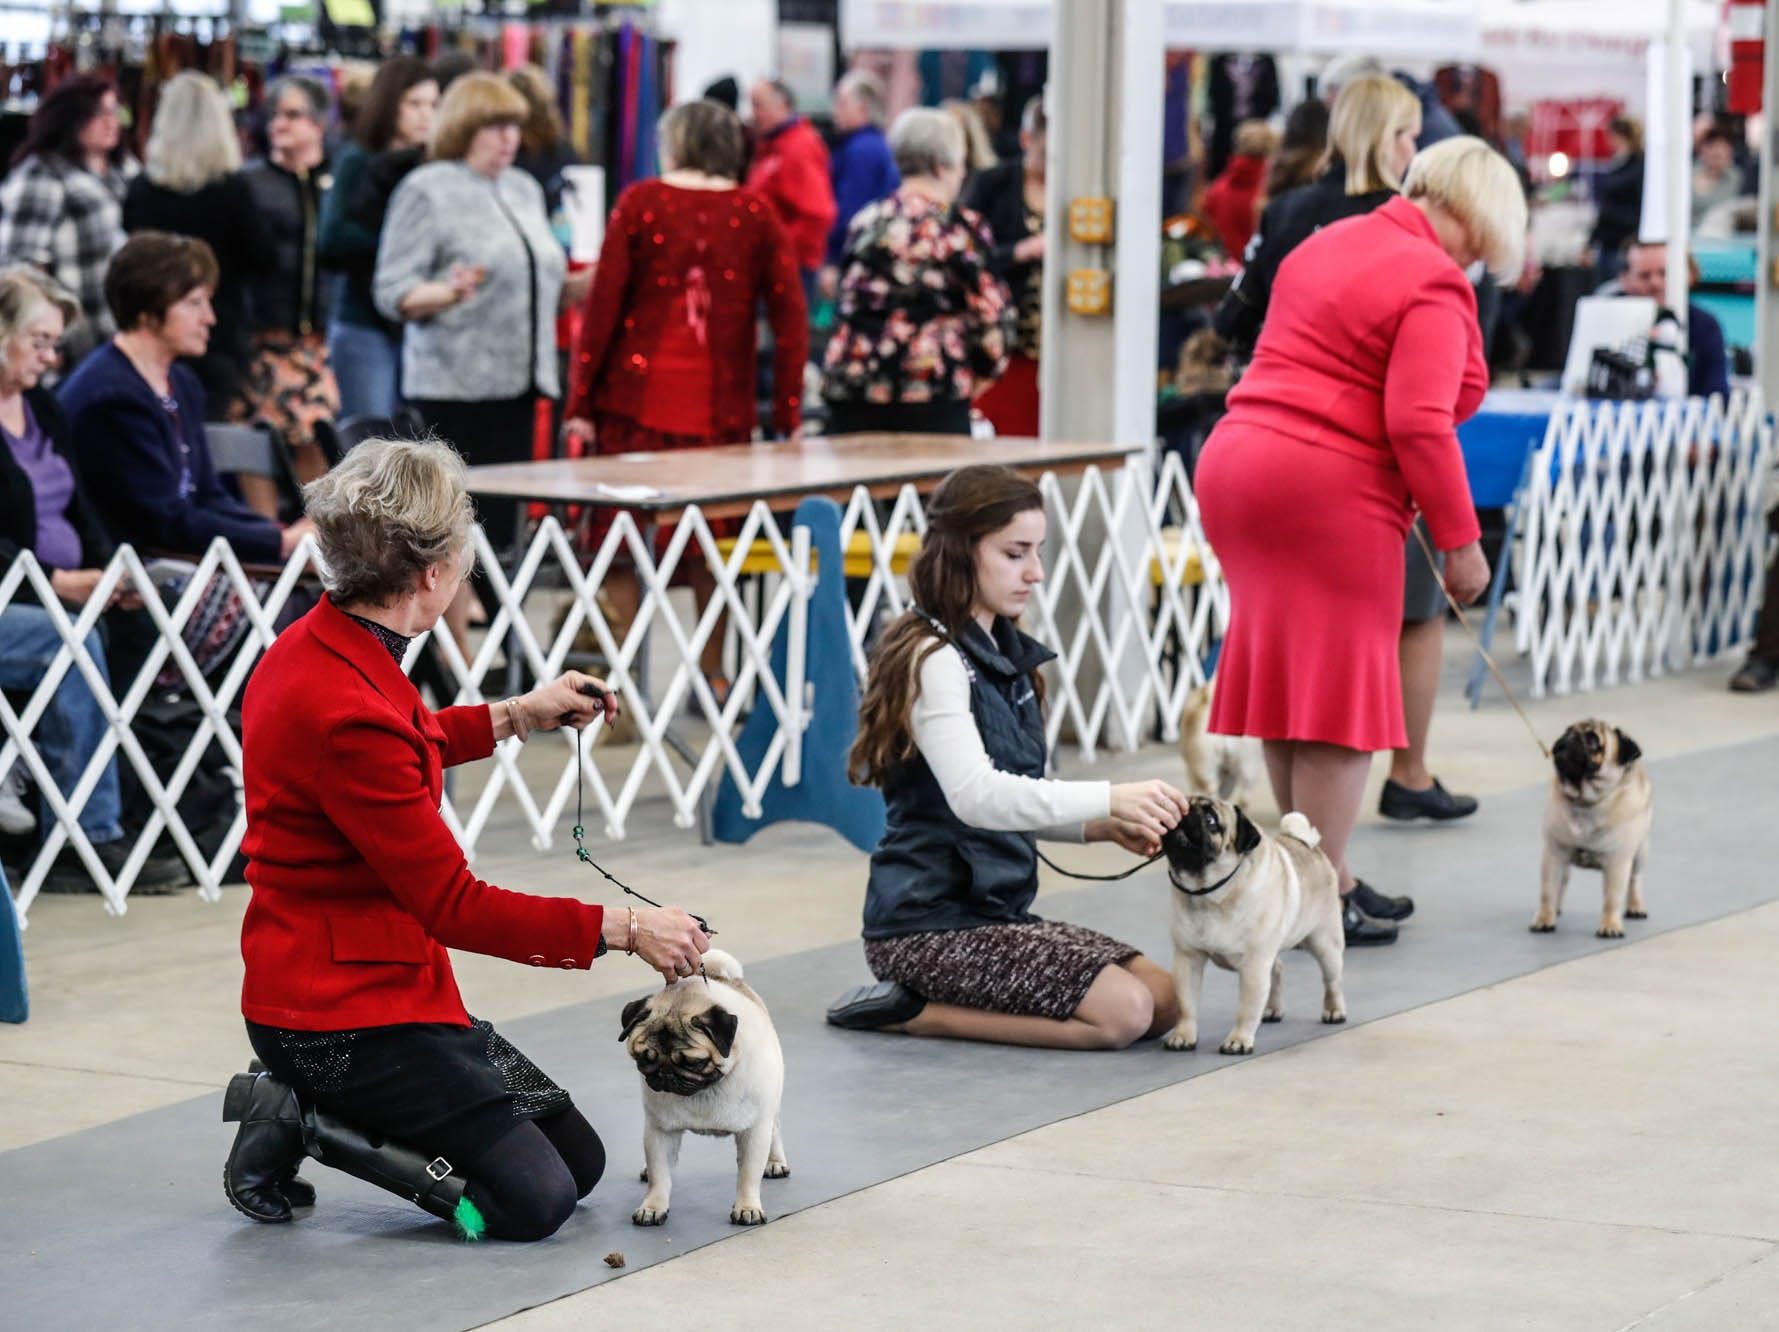 Pugs show at the Indy Winter Classic All Breed Dog Show held at the Indiana State Fairgrounds on Sunday, Feb. 10, 2019.